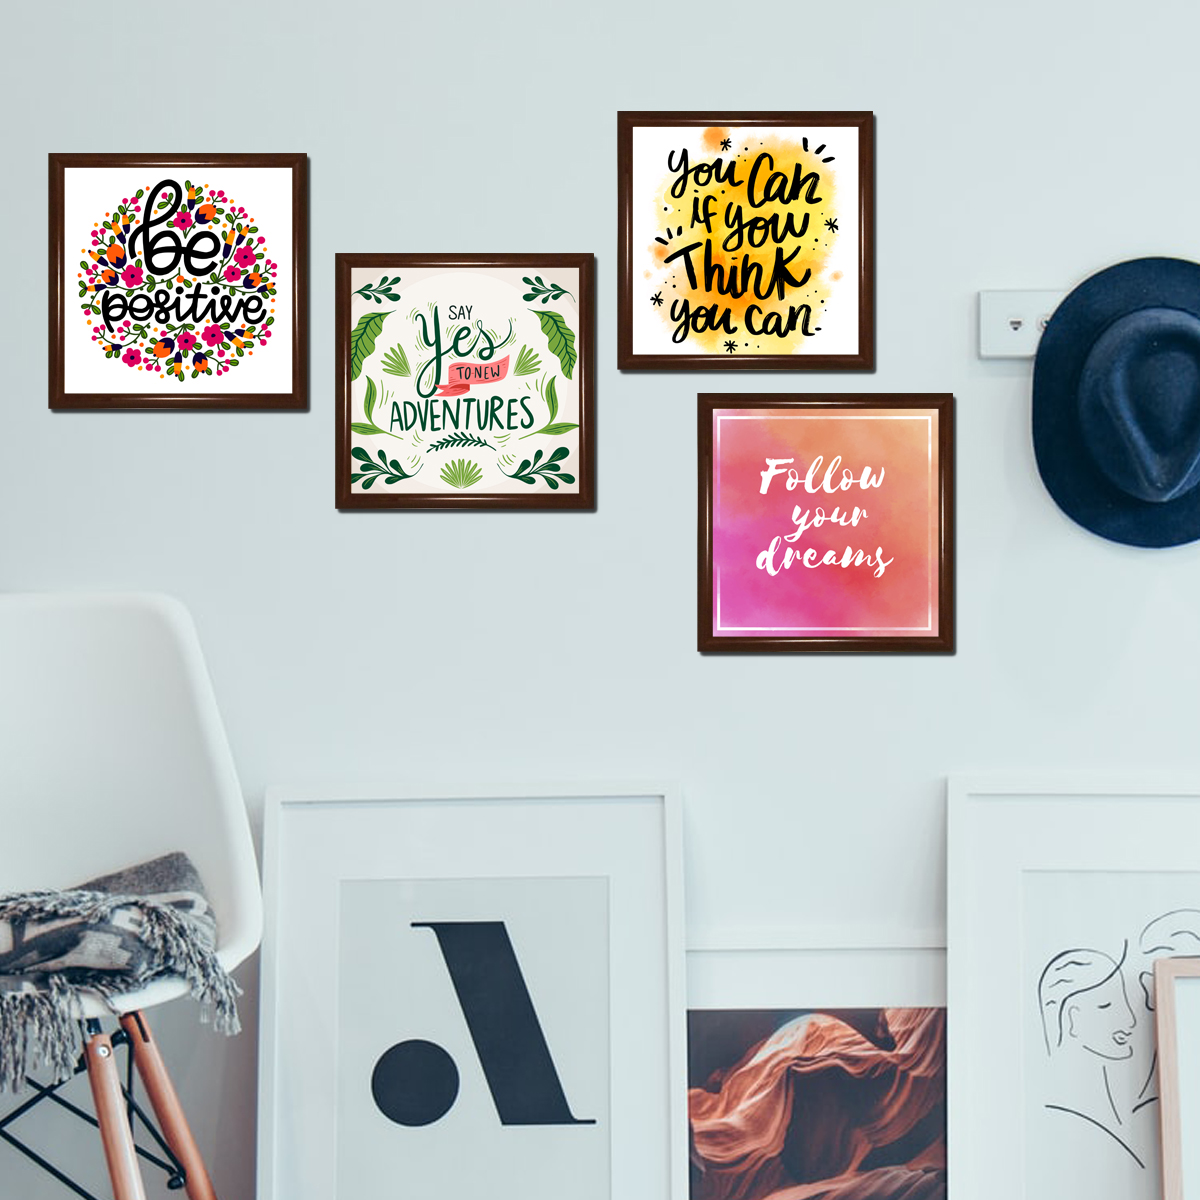 Set of 4 Wall Decor Picture Frames 8x8 inches Motivational Home Decor With Quotes / Images